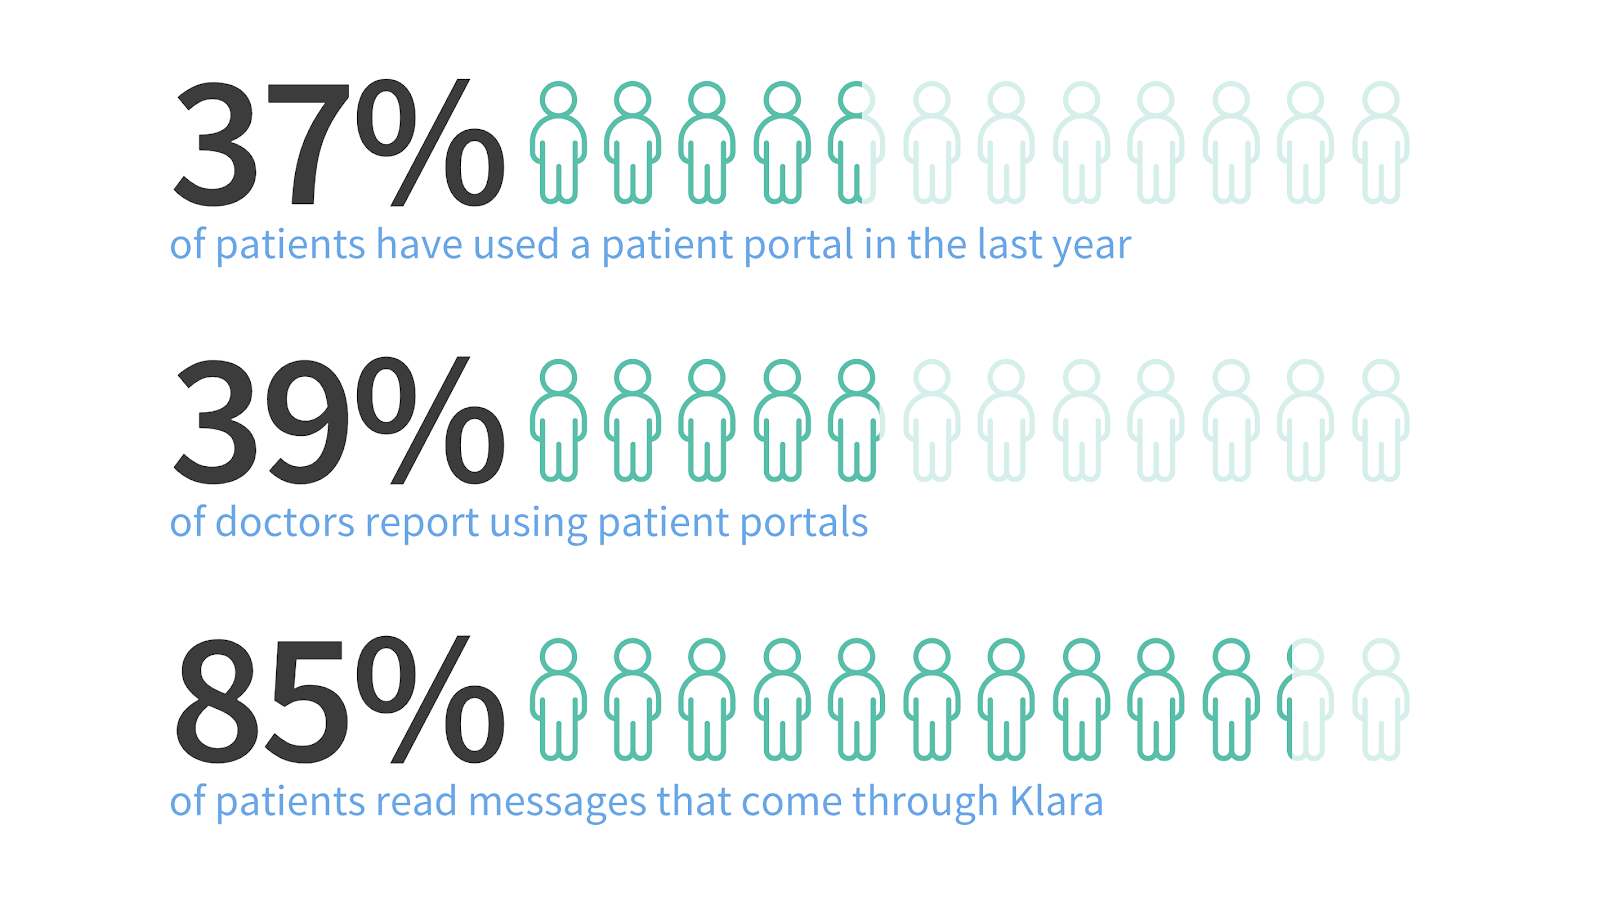 Patient portals largely unused, study finds